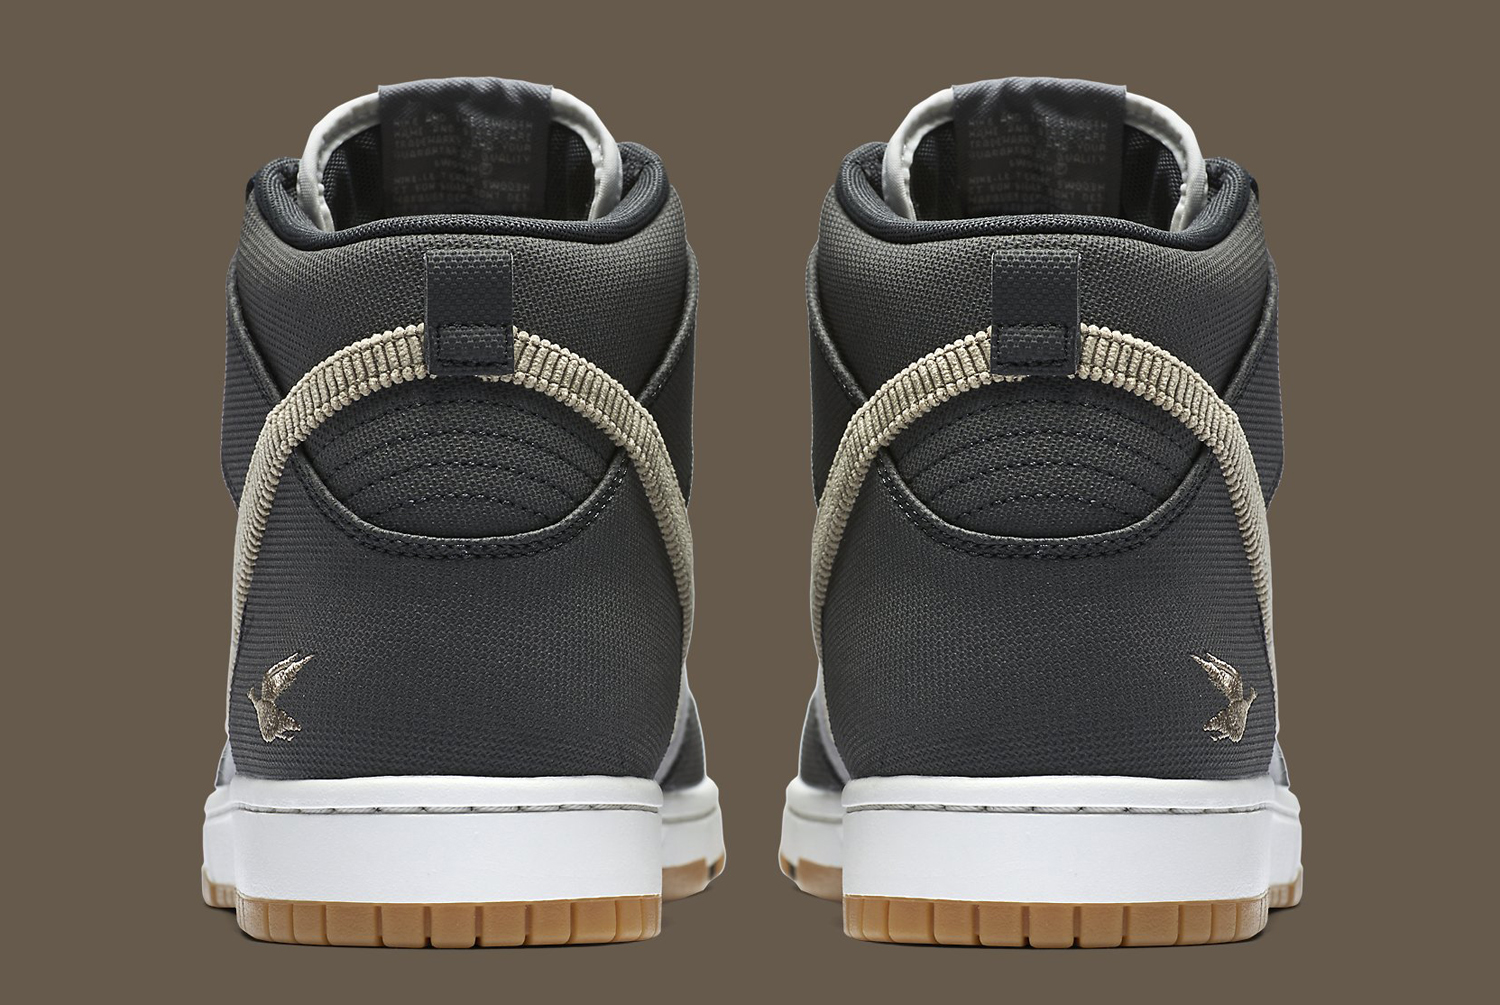 save off 041ff 11b54 You Can Go Duck Hunting in These Nike Dunks   Sole Collector